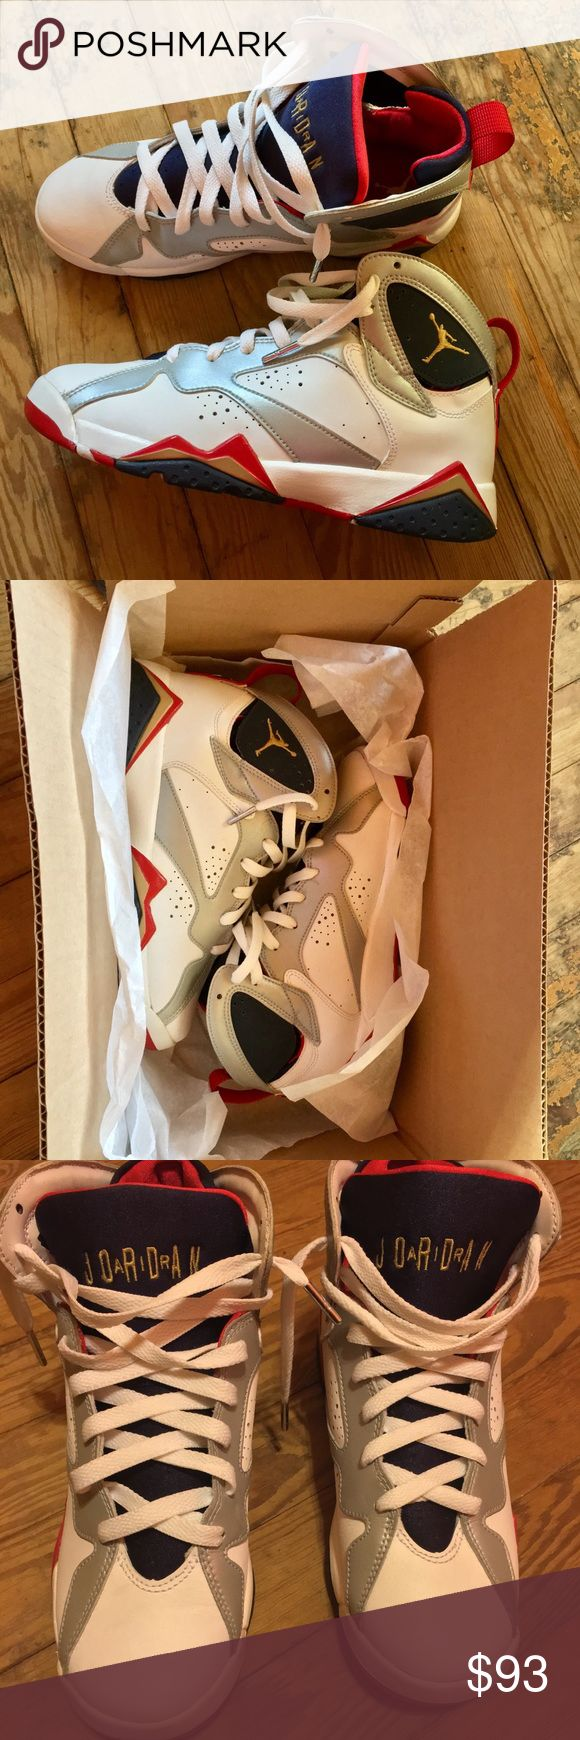 """🤩NIKE AIR JORDAN RETRO 7 OLYMPIC  (2012  RELEASE) These shoes are fitted in Grade School Youth size 6.5 they're unisex shoes for boys and girls. These shoes are in great condition; however there is """"slight"""" cracking around the inner lower part of the shoes; nothing major. (the cracking is only noticeable up """"really"""" close) due to white shoe polish that was applied to them. The overall structure of the shoes are in excellent condition; there is no sole seperation, creasing etc.  Condition…"""